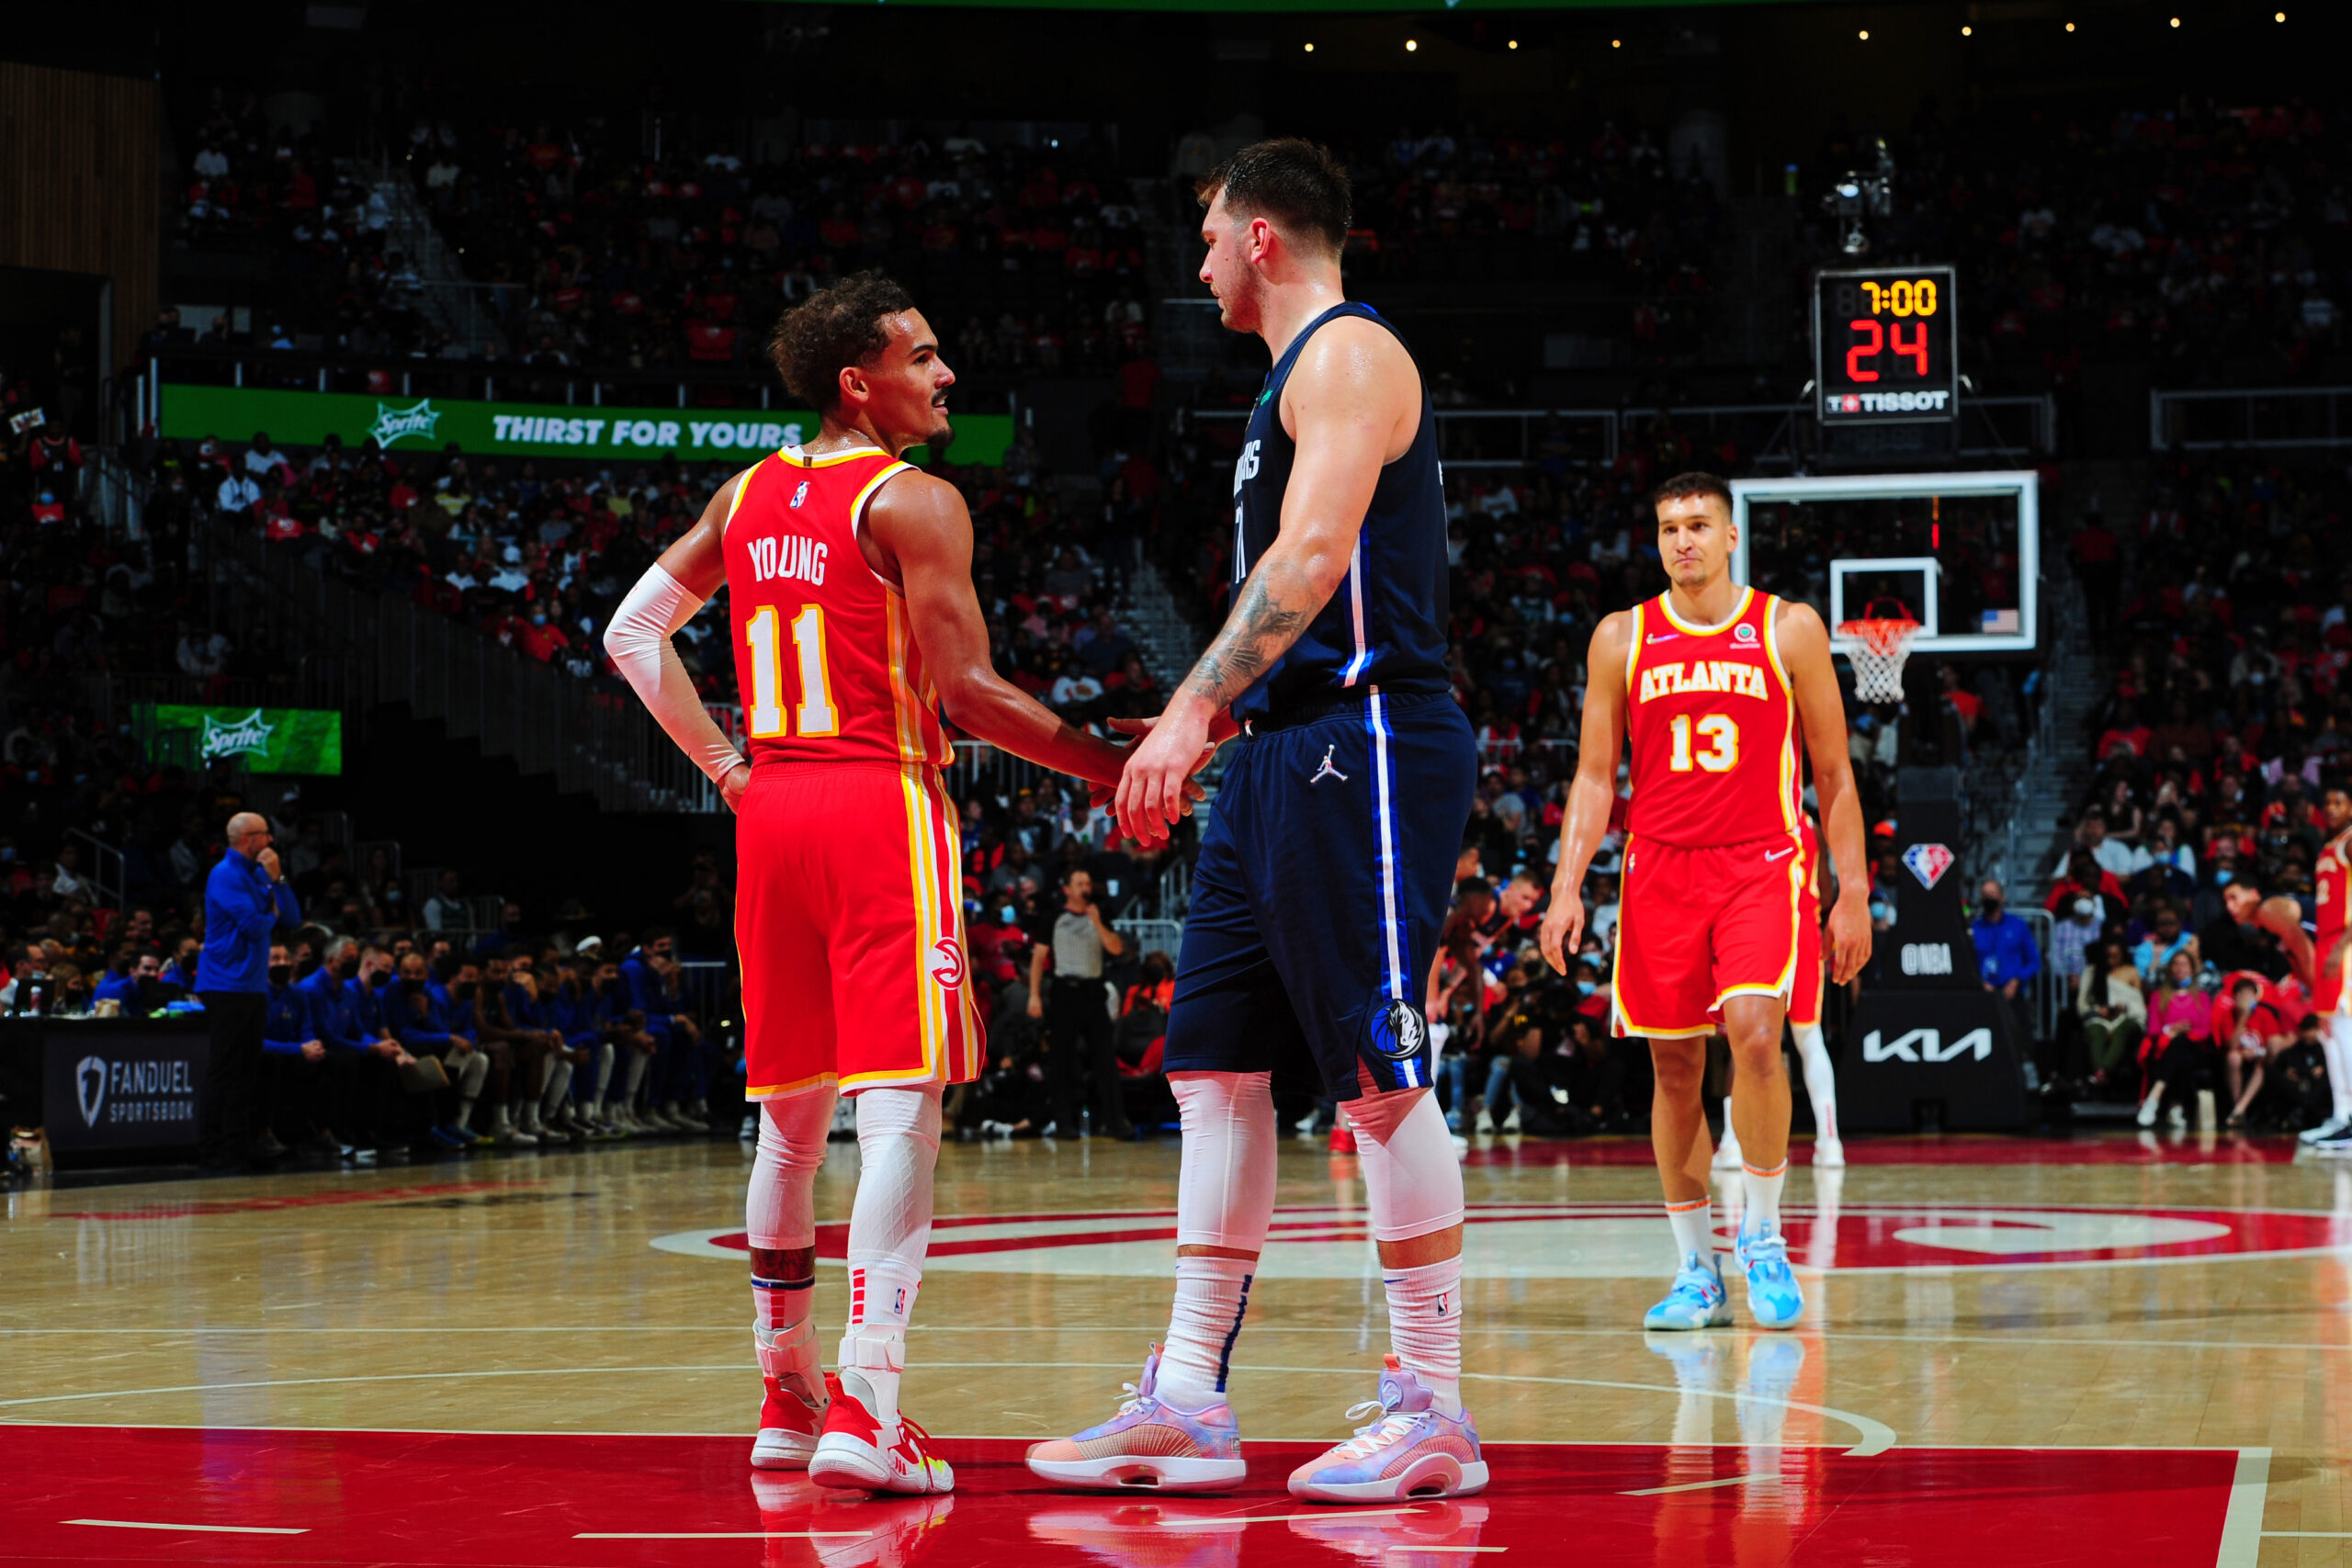 Hawks' depth elevating Trae Young over Luka Doncic and the Mavericks